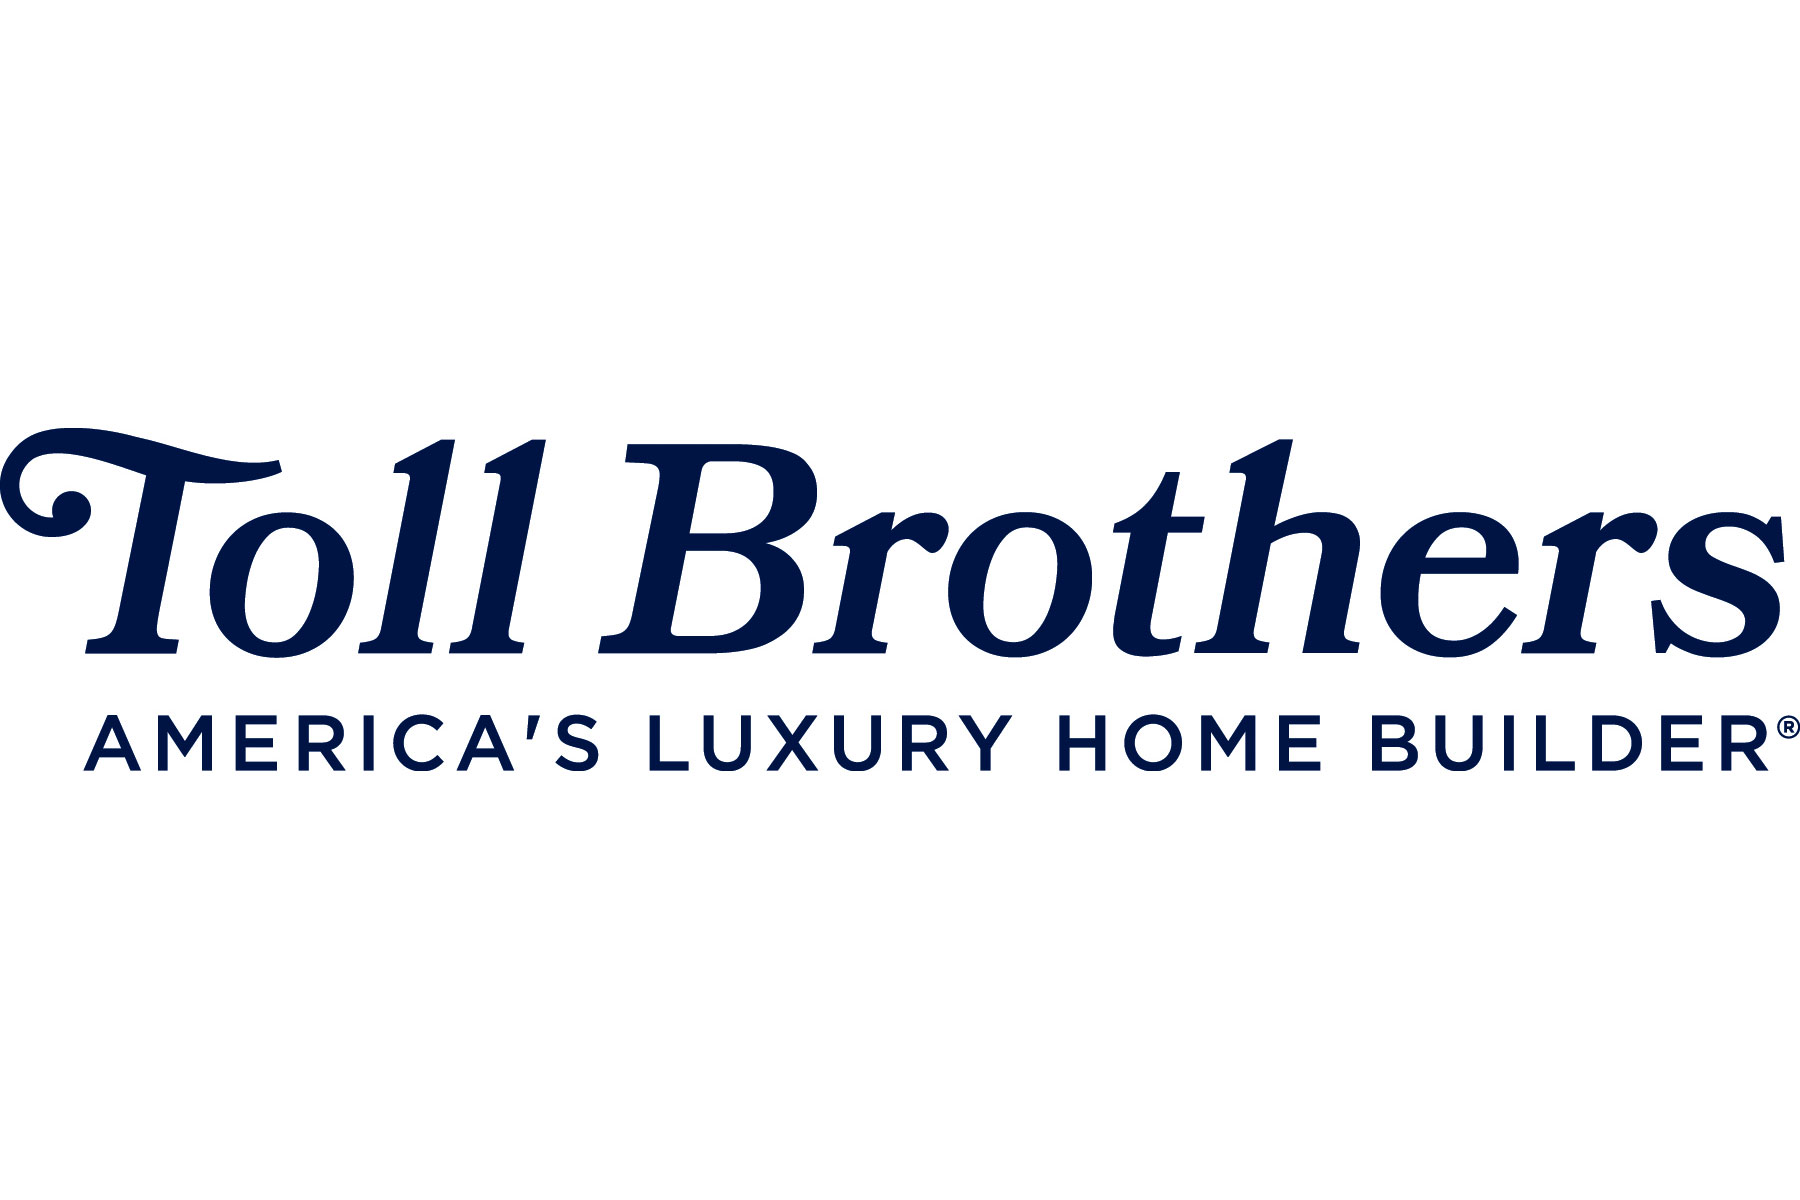 tollbrothers-logo.jpg